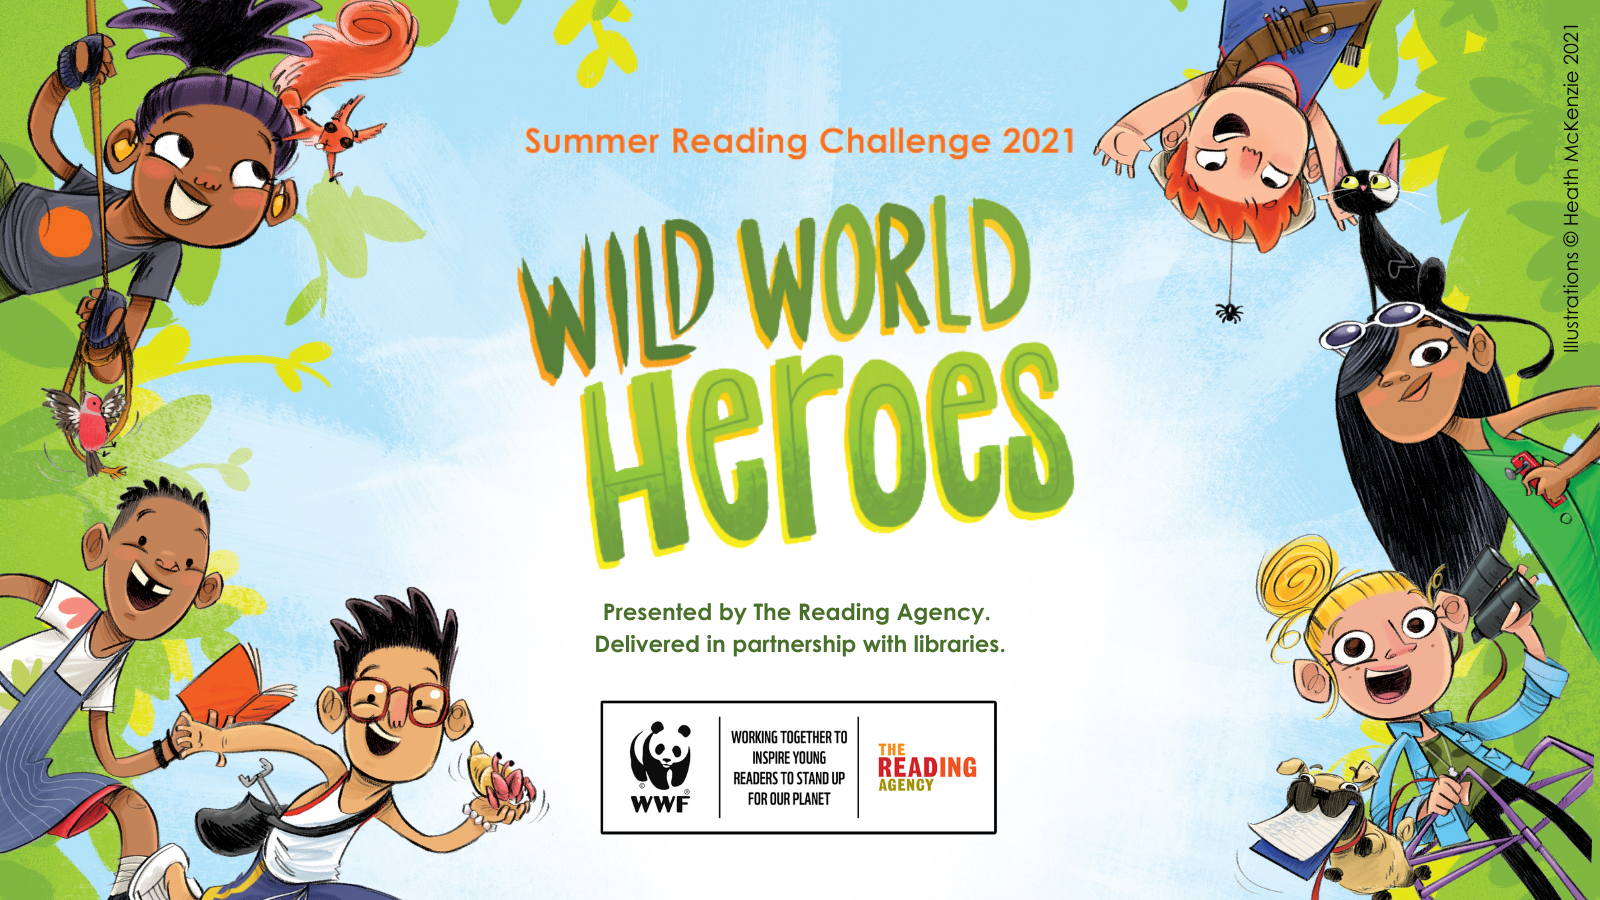 The Reading Agency's Summer Reading Challenge 2021, Wild World Heroes